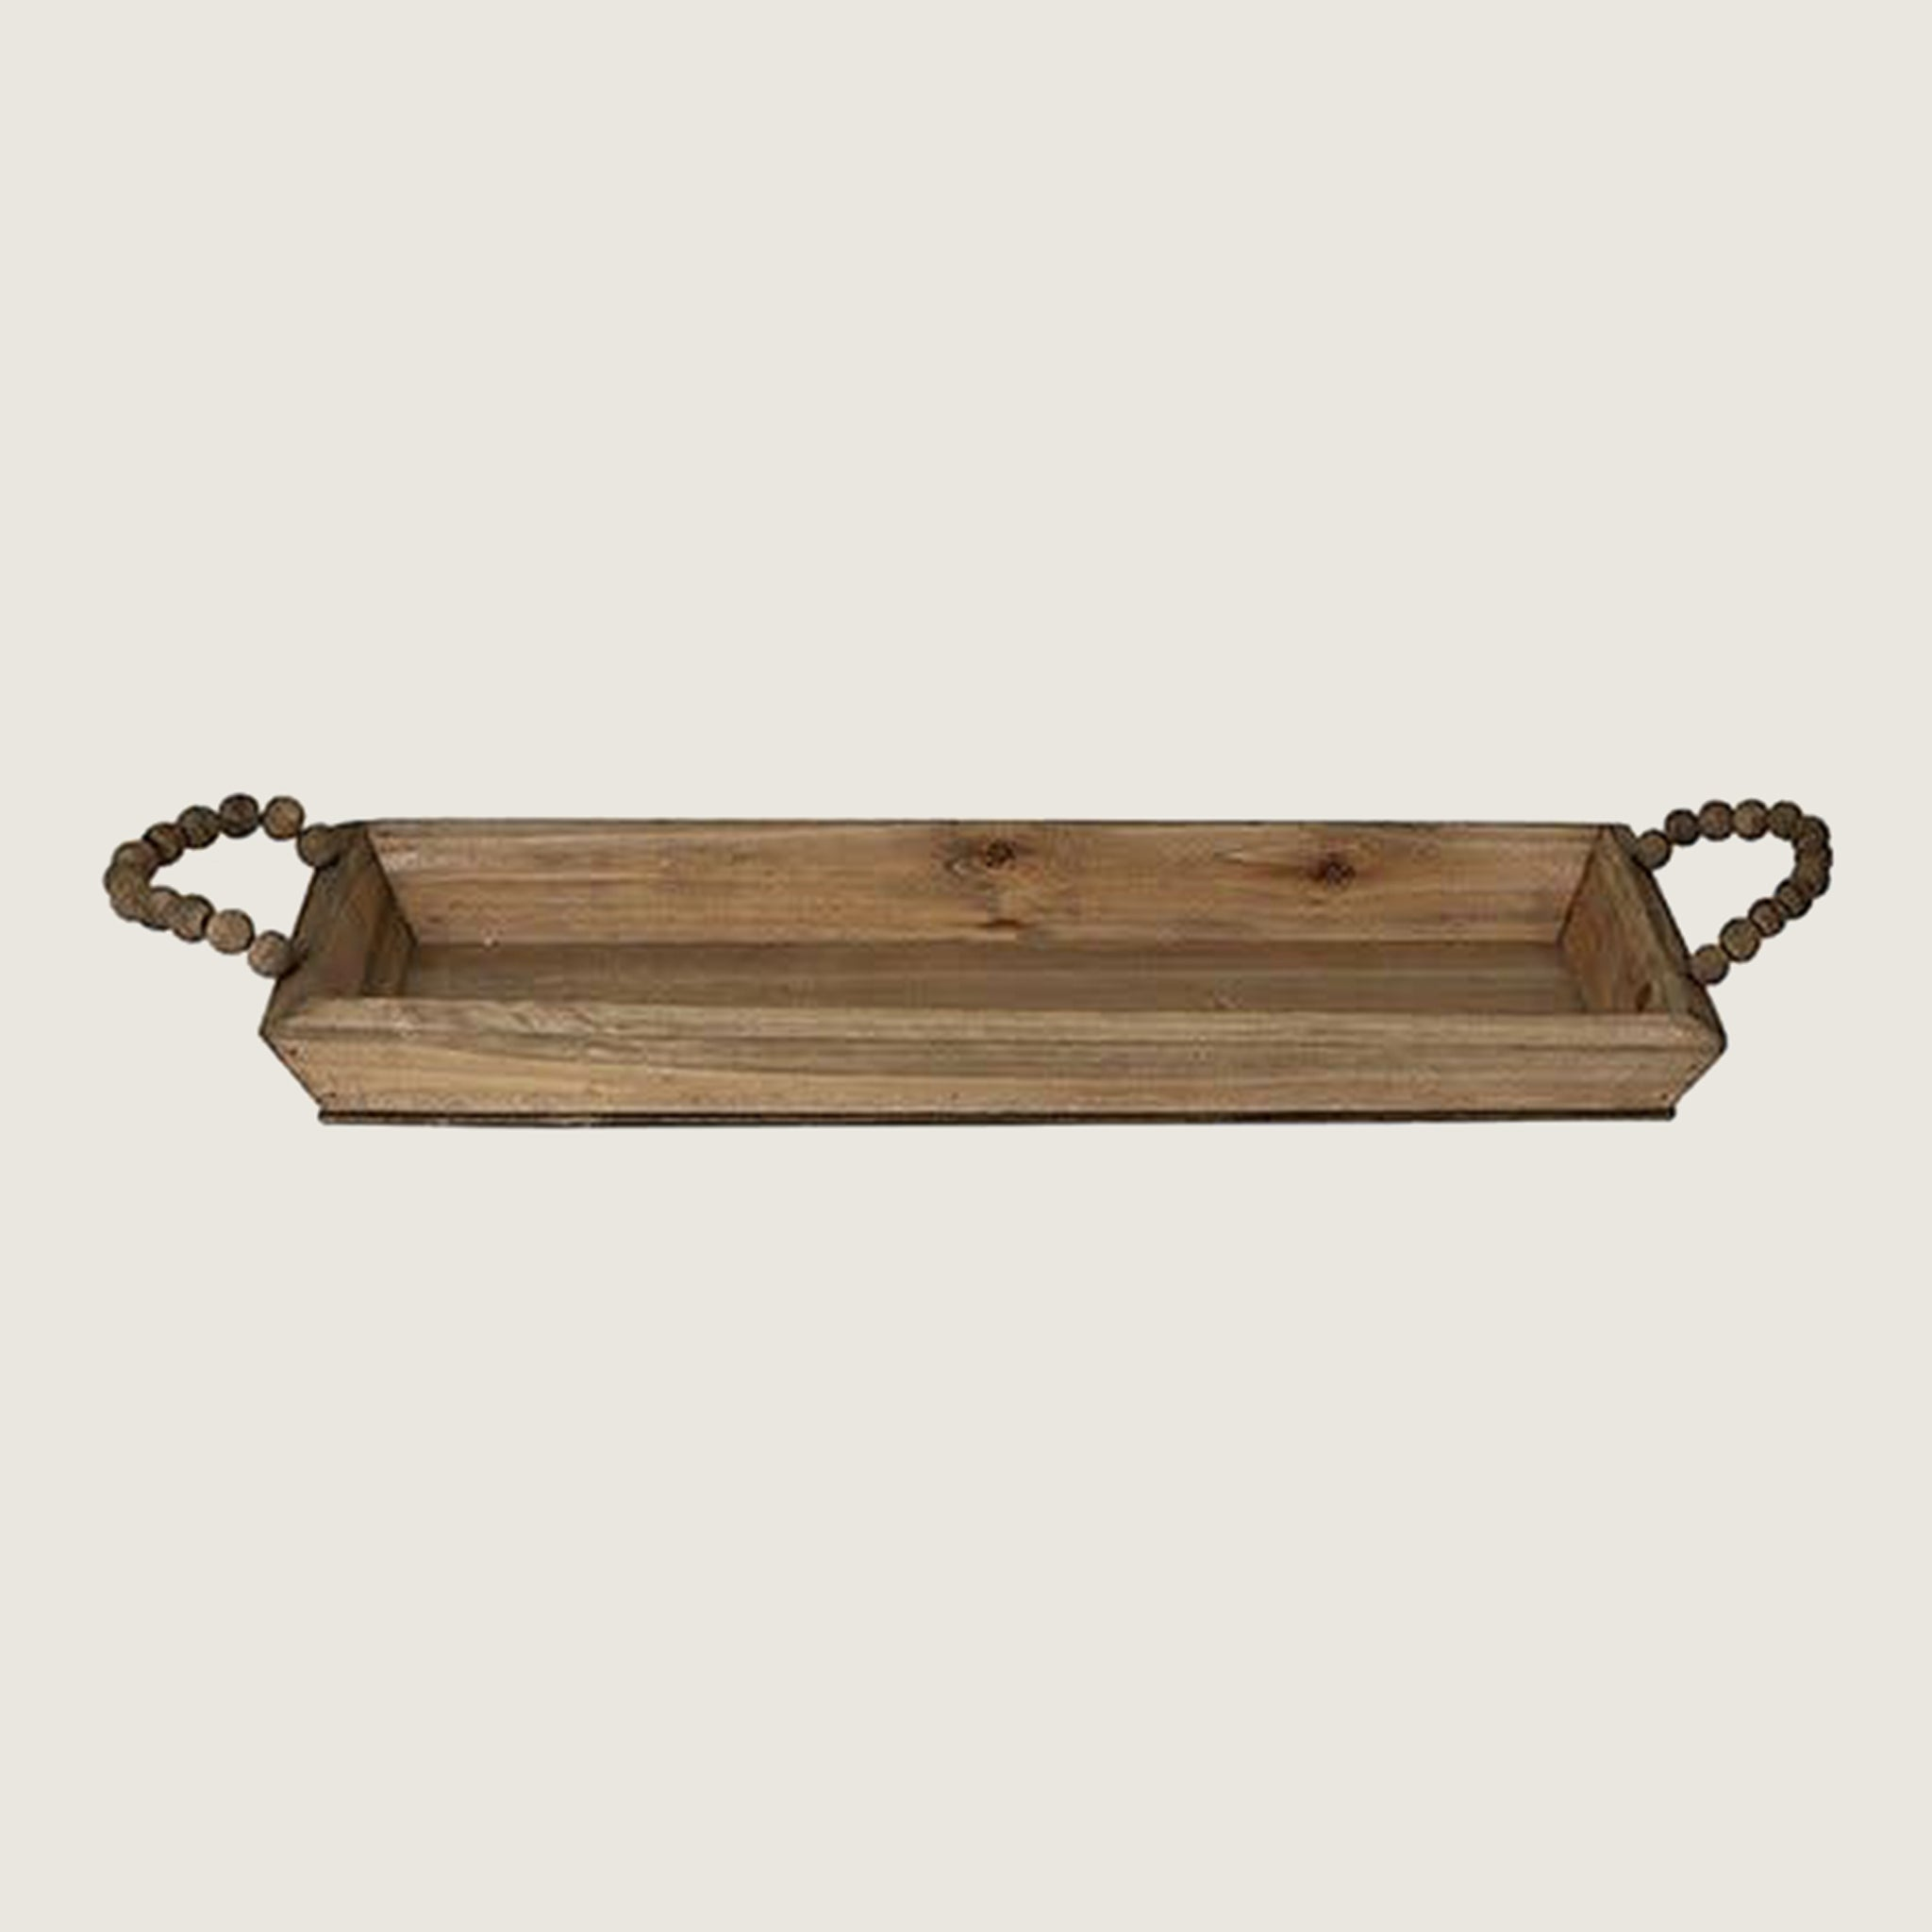 Large Wooden Tray - Blackbird General Store